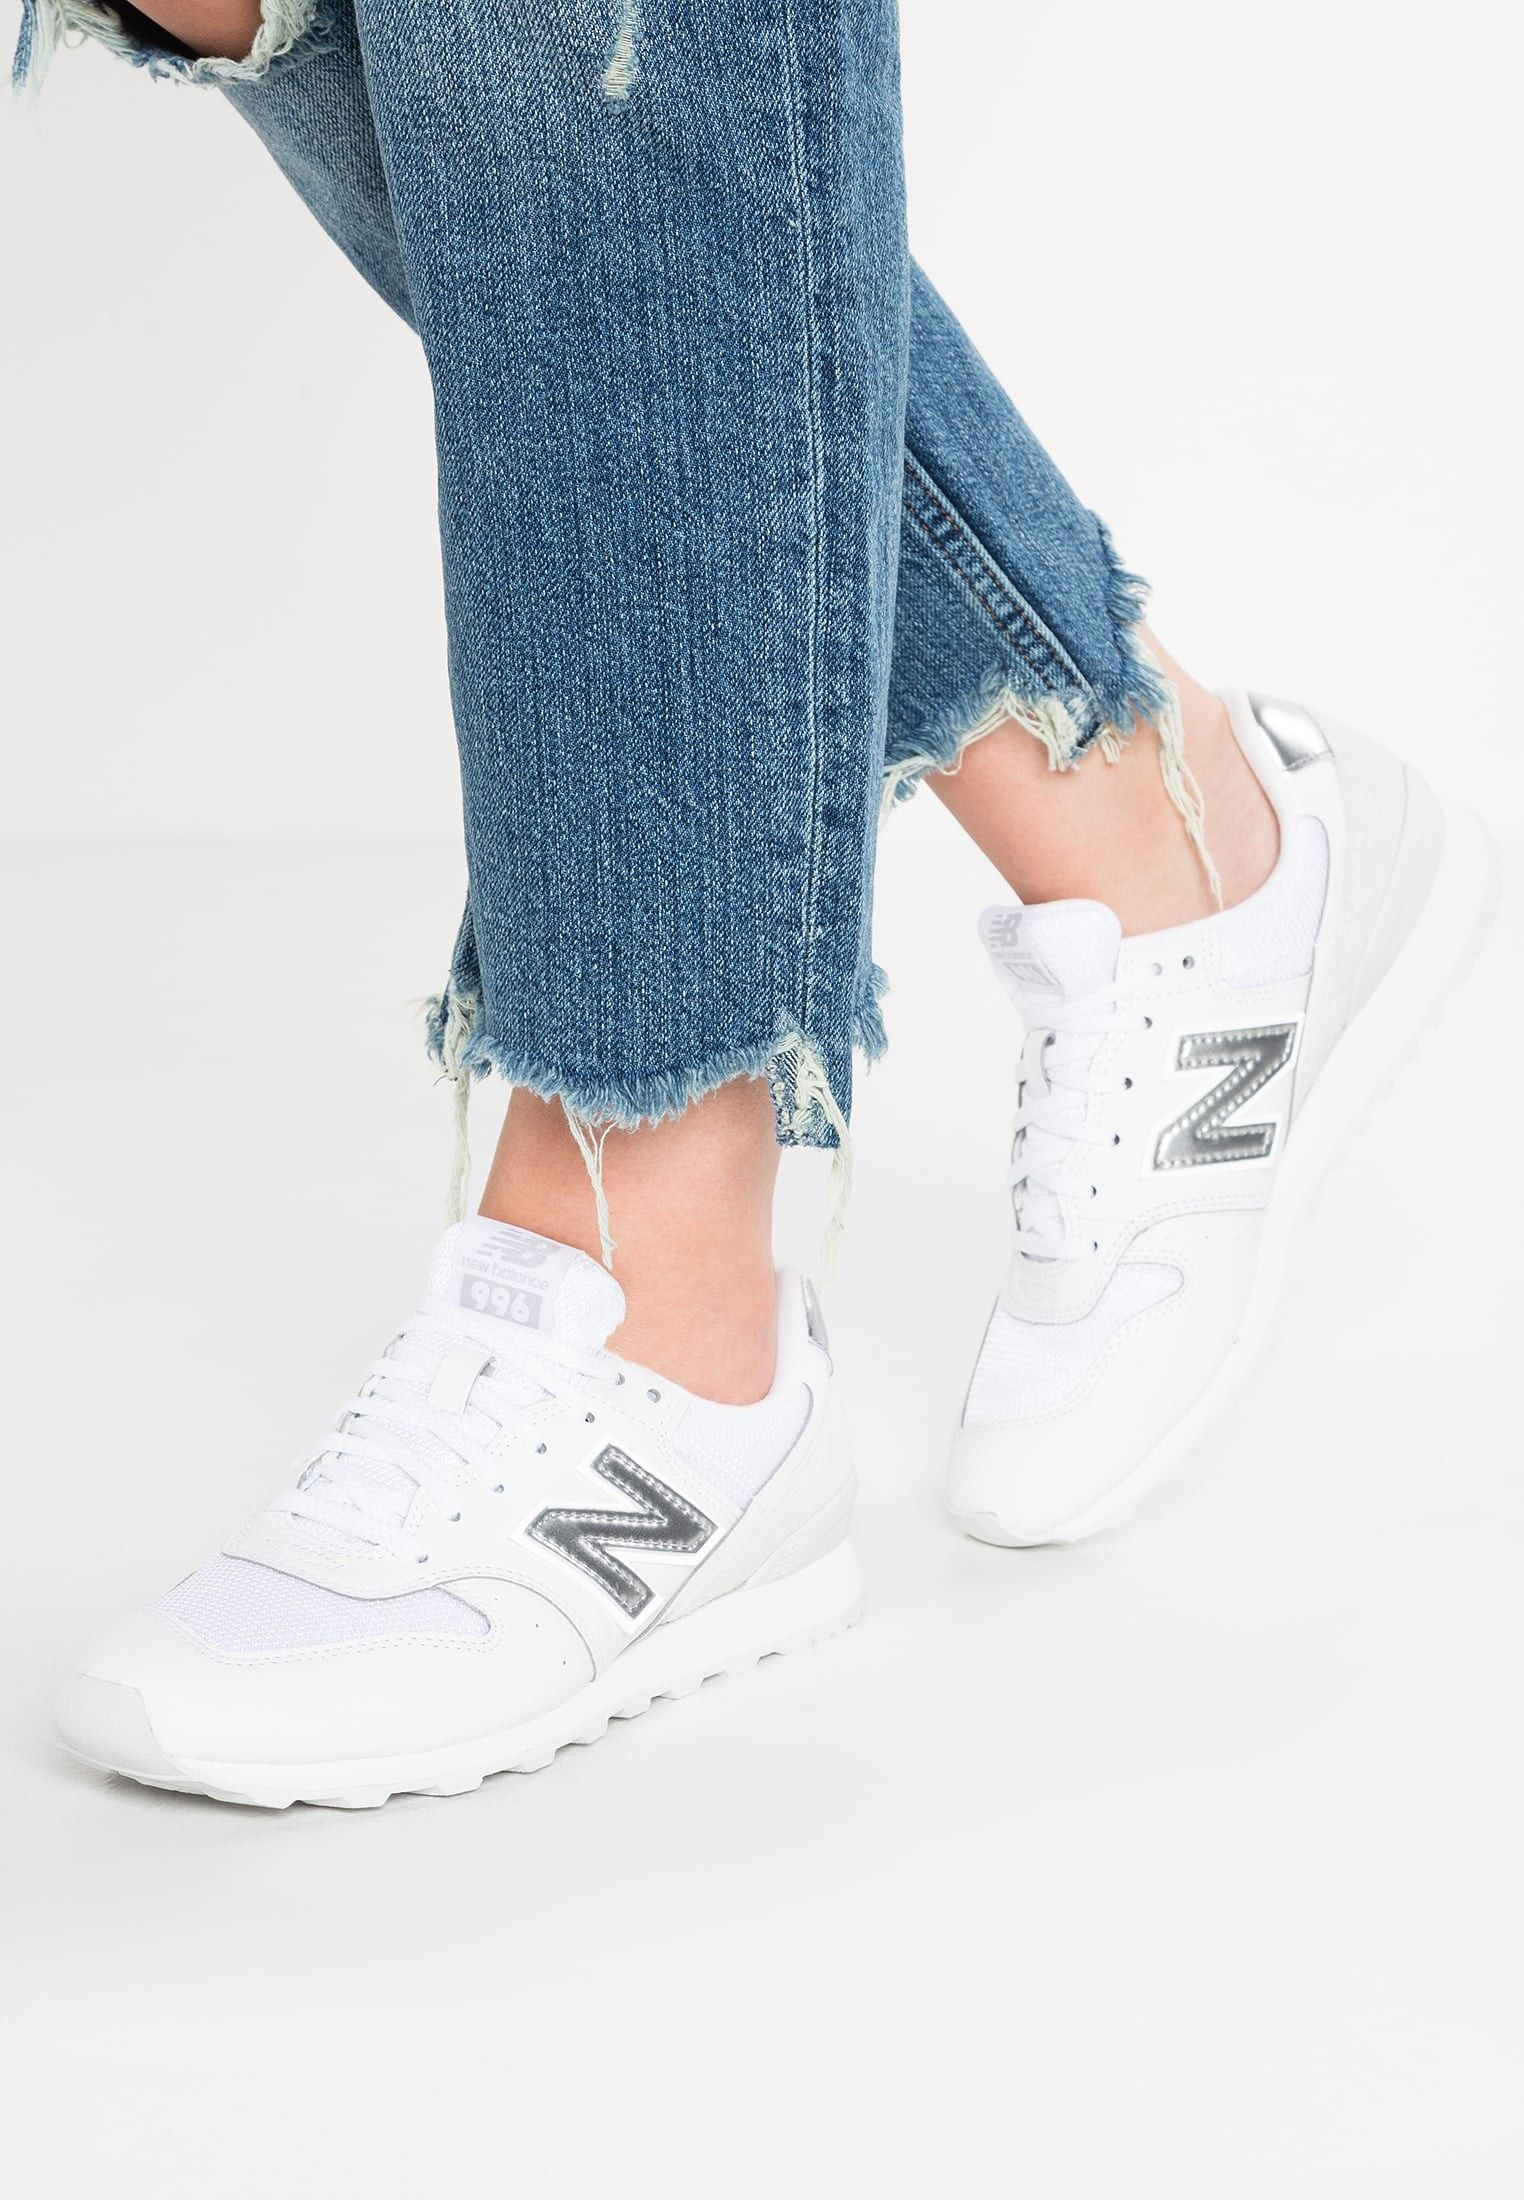 Pin by Kelley R. Brownlow on Lifestyle:NB Casual Shoes